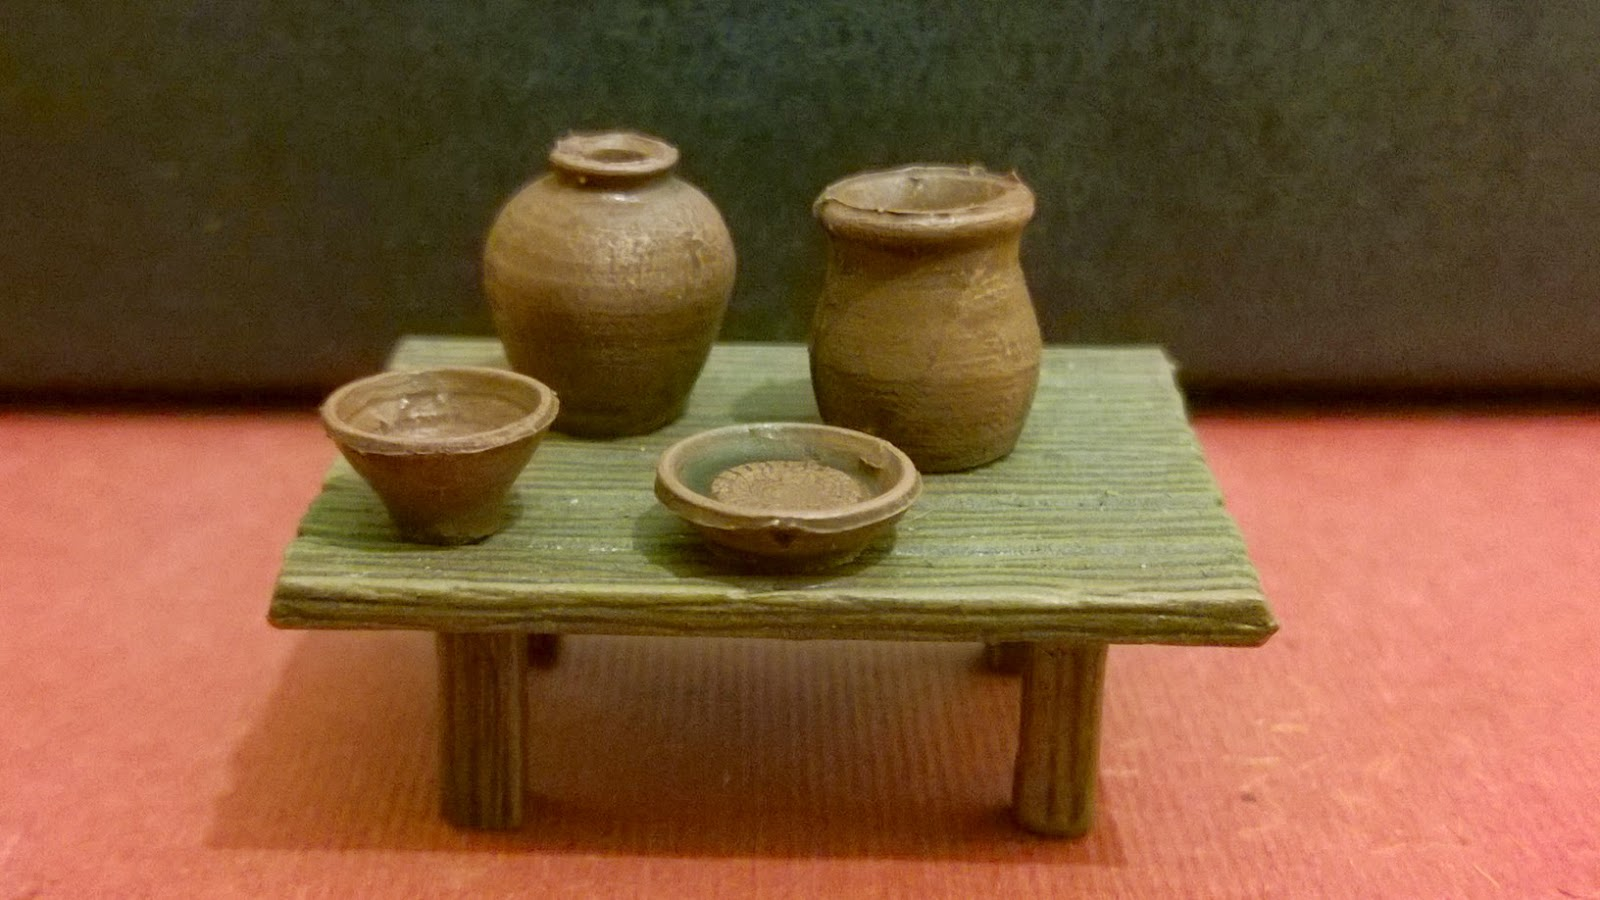 28mm pottery scenery wargames wargaming